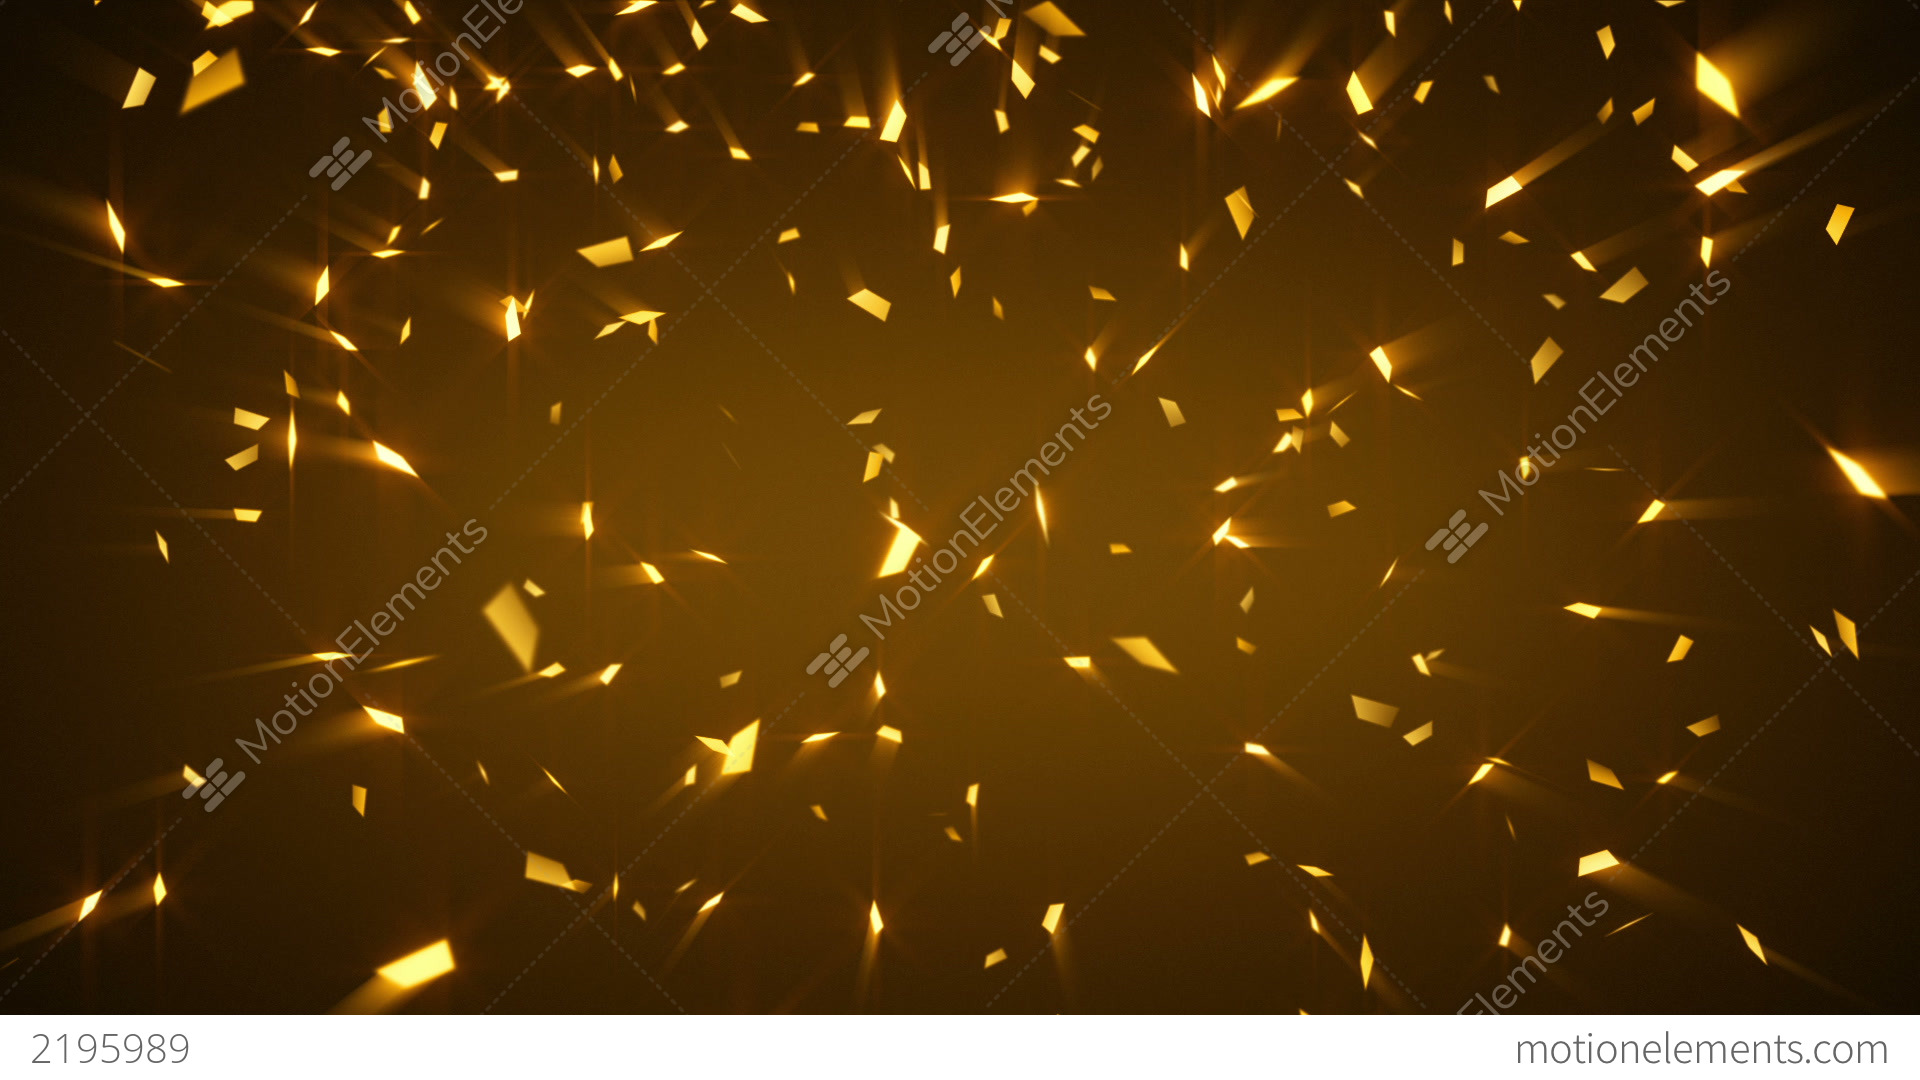 gold confetti desktop wallpaper - photo #20